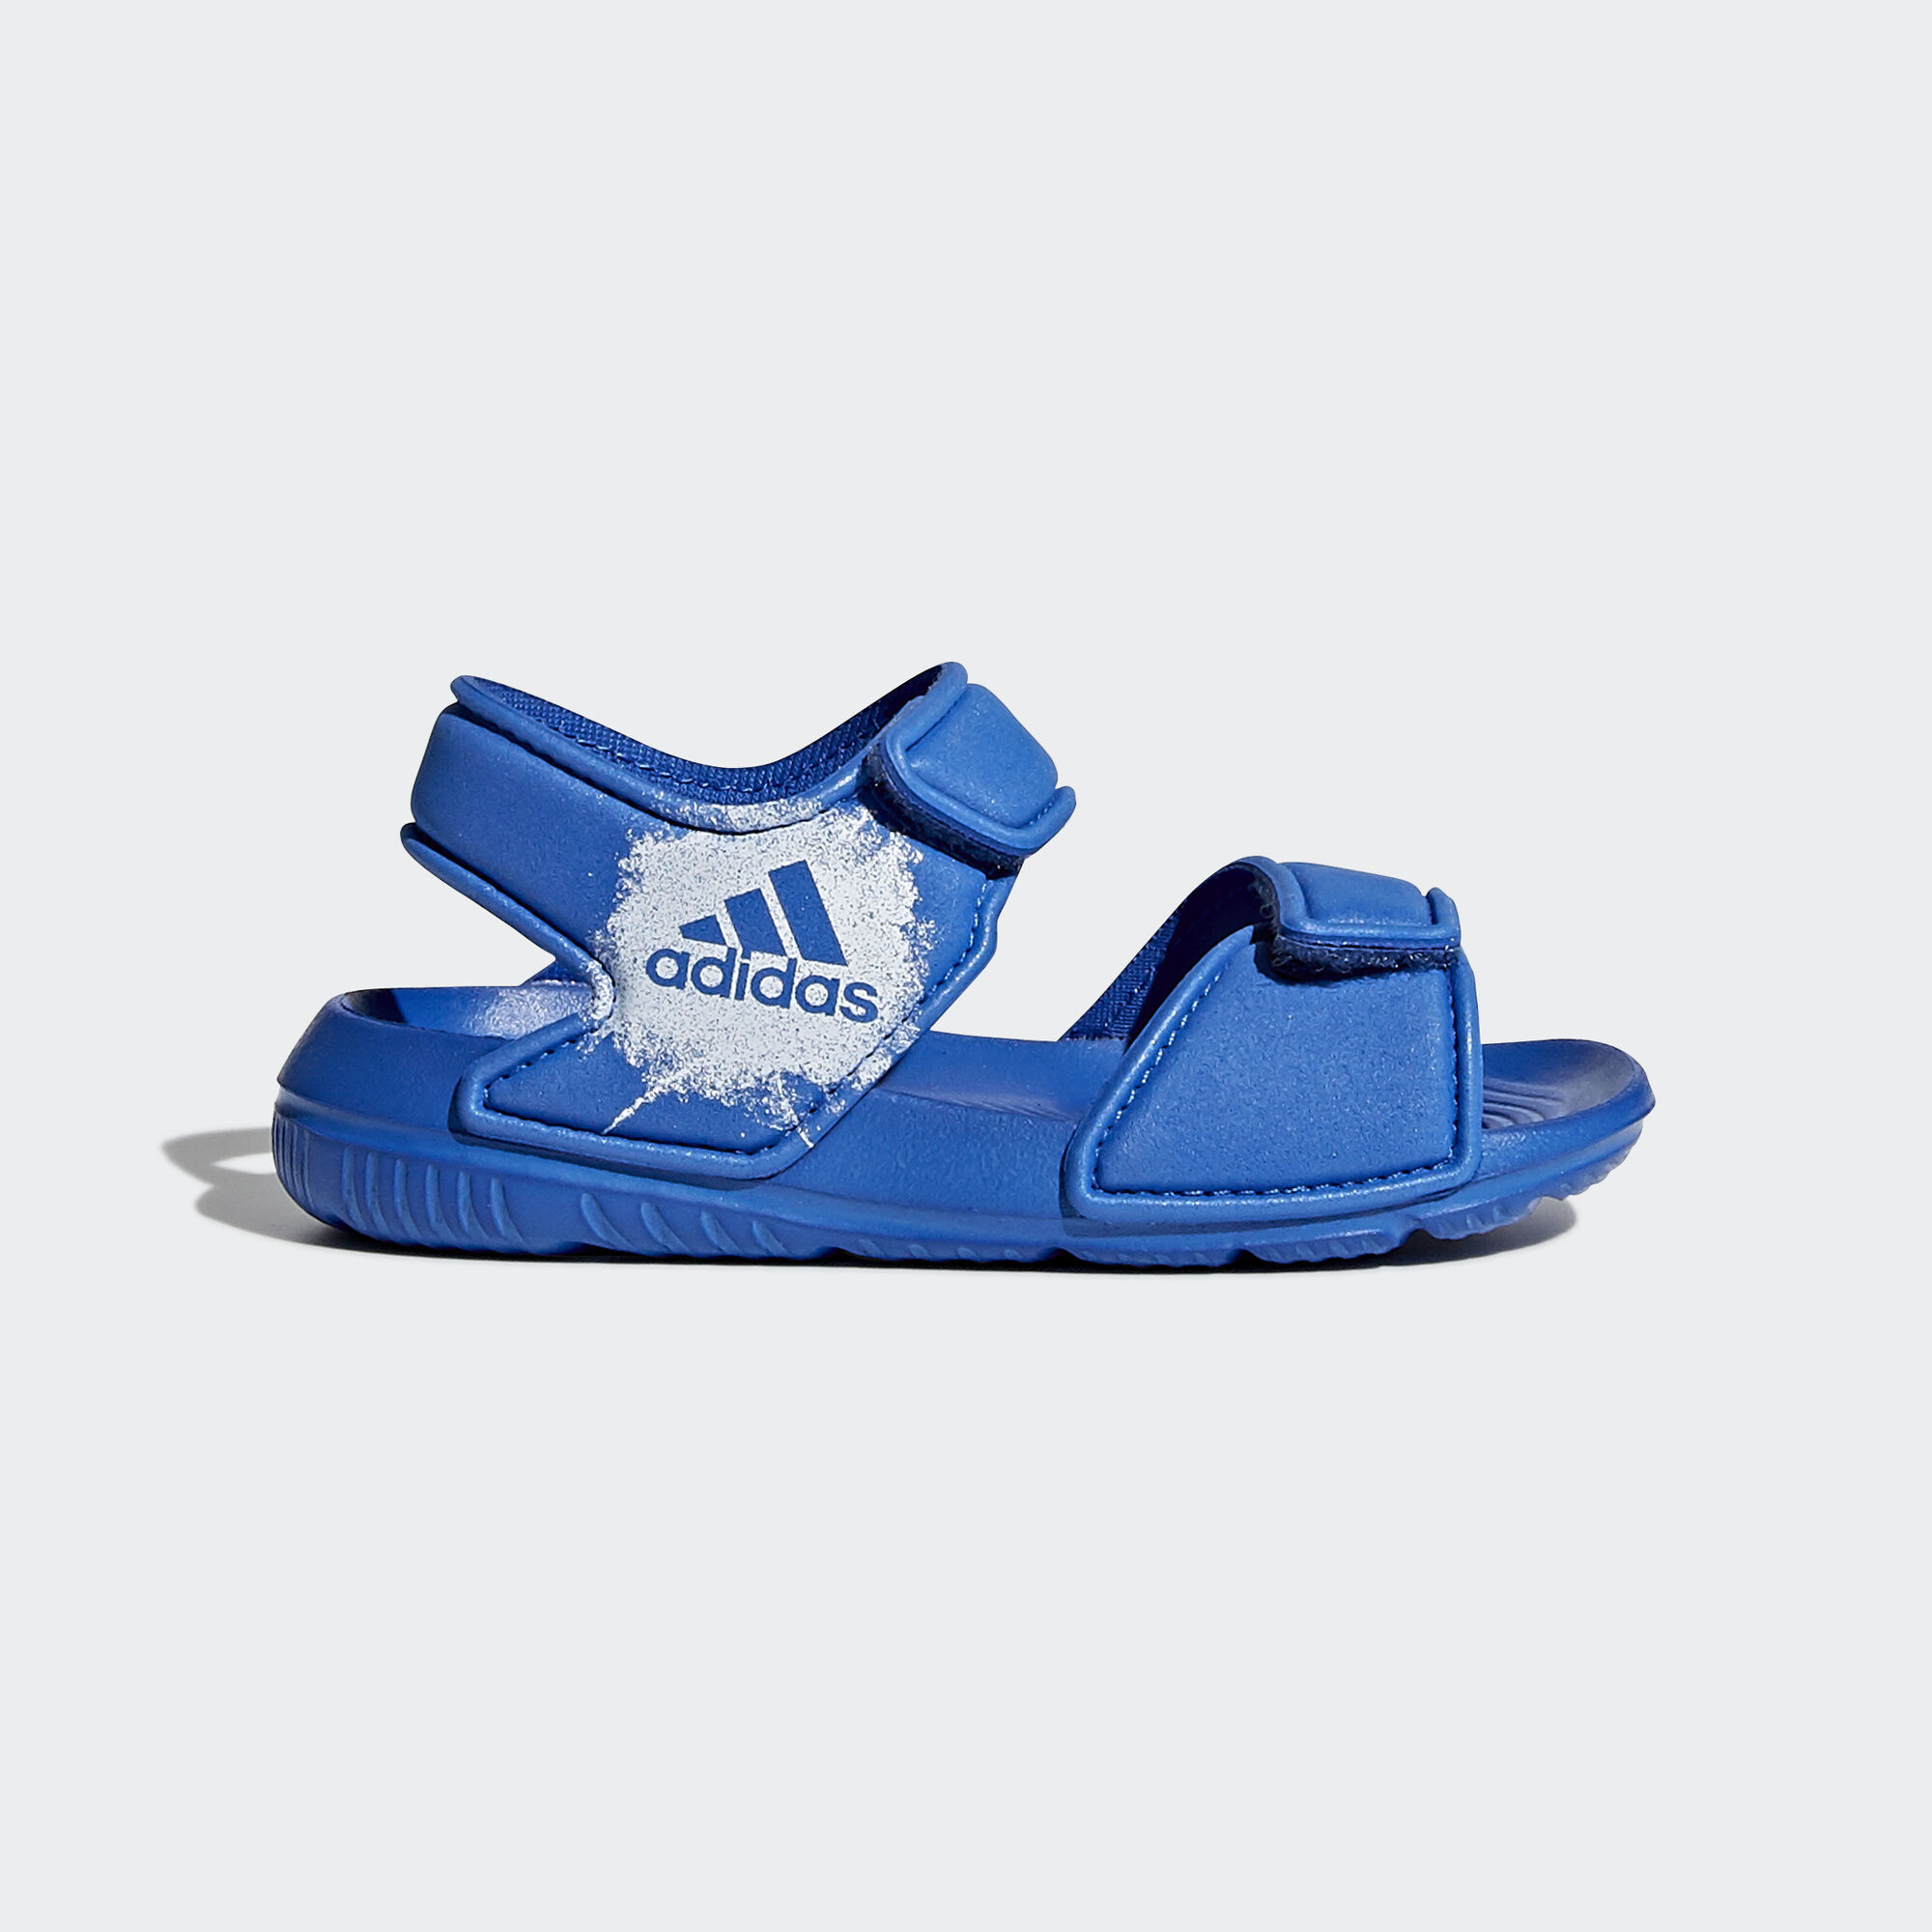 ed7e363b9 adidas flip flops kids 2017 on sale   OFF33% Discounted